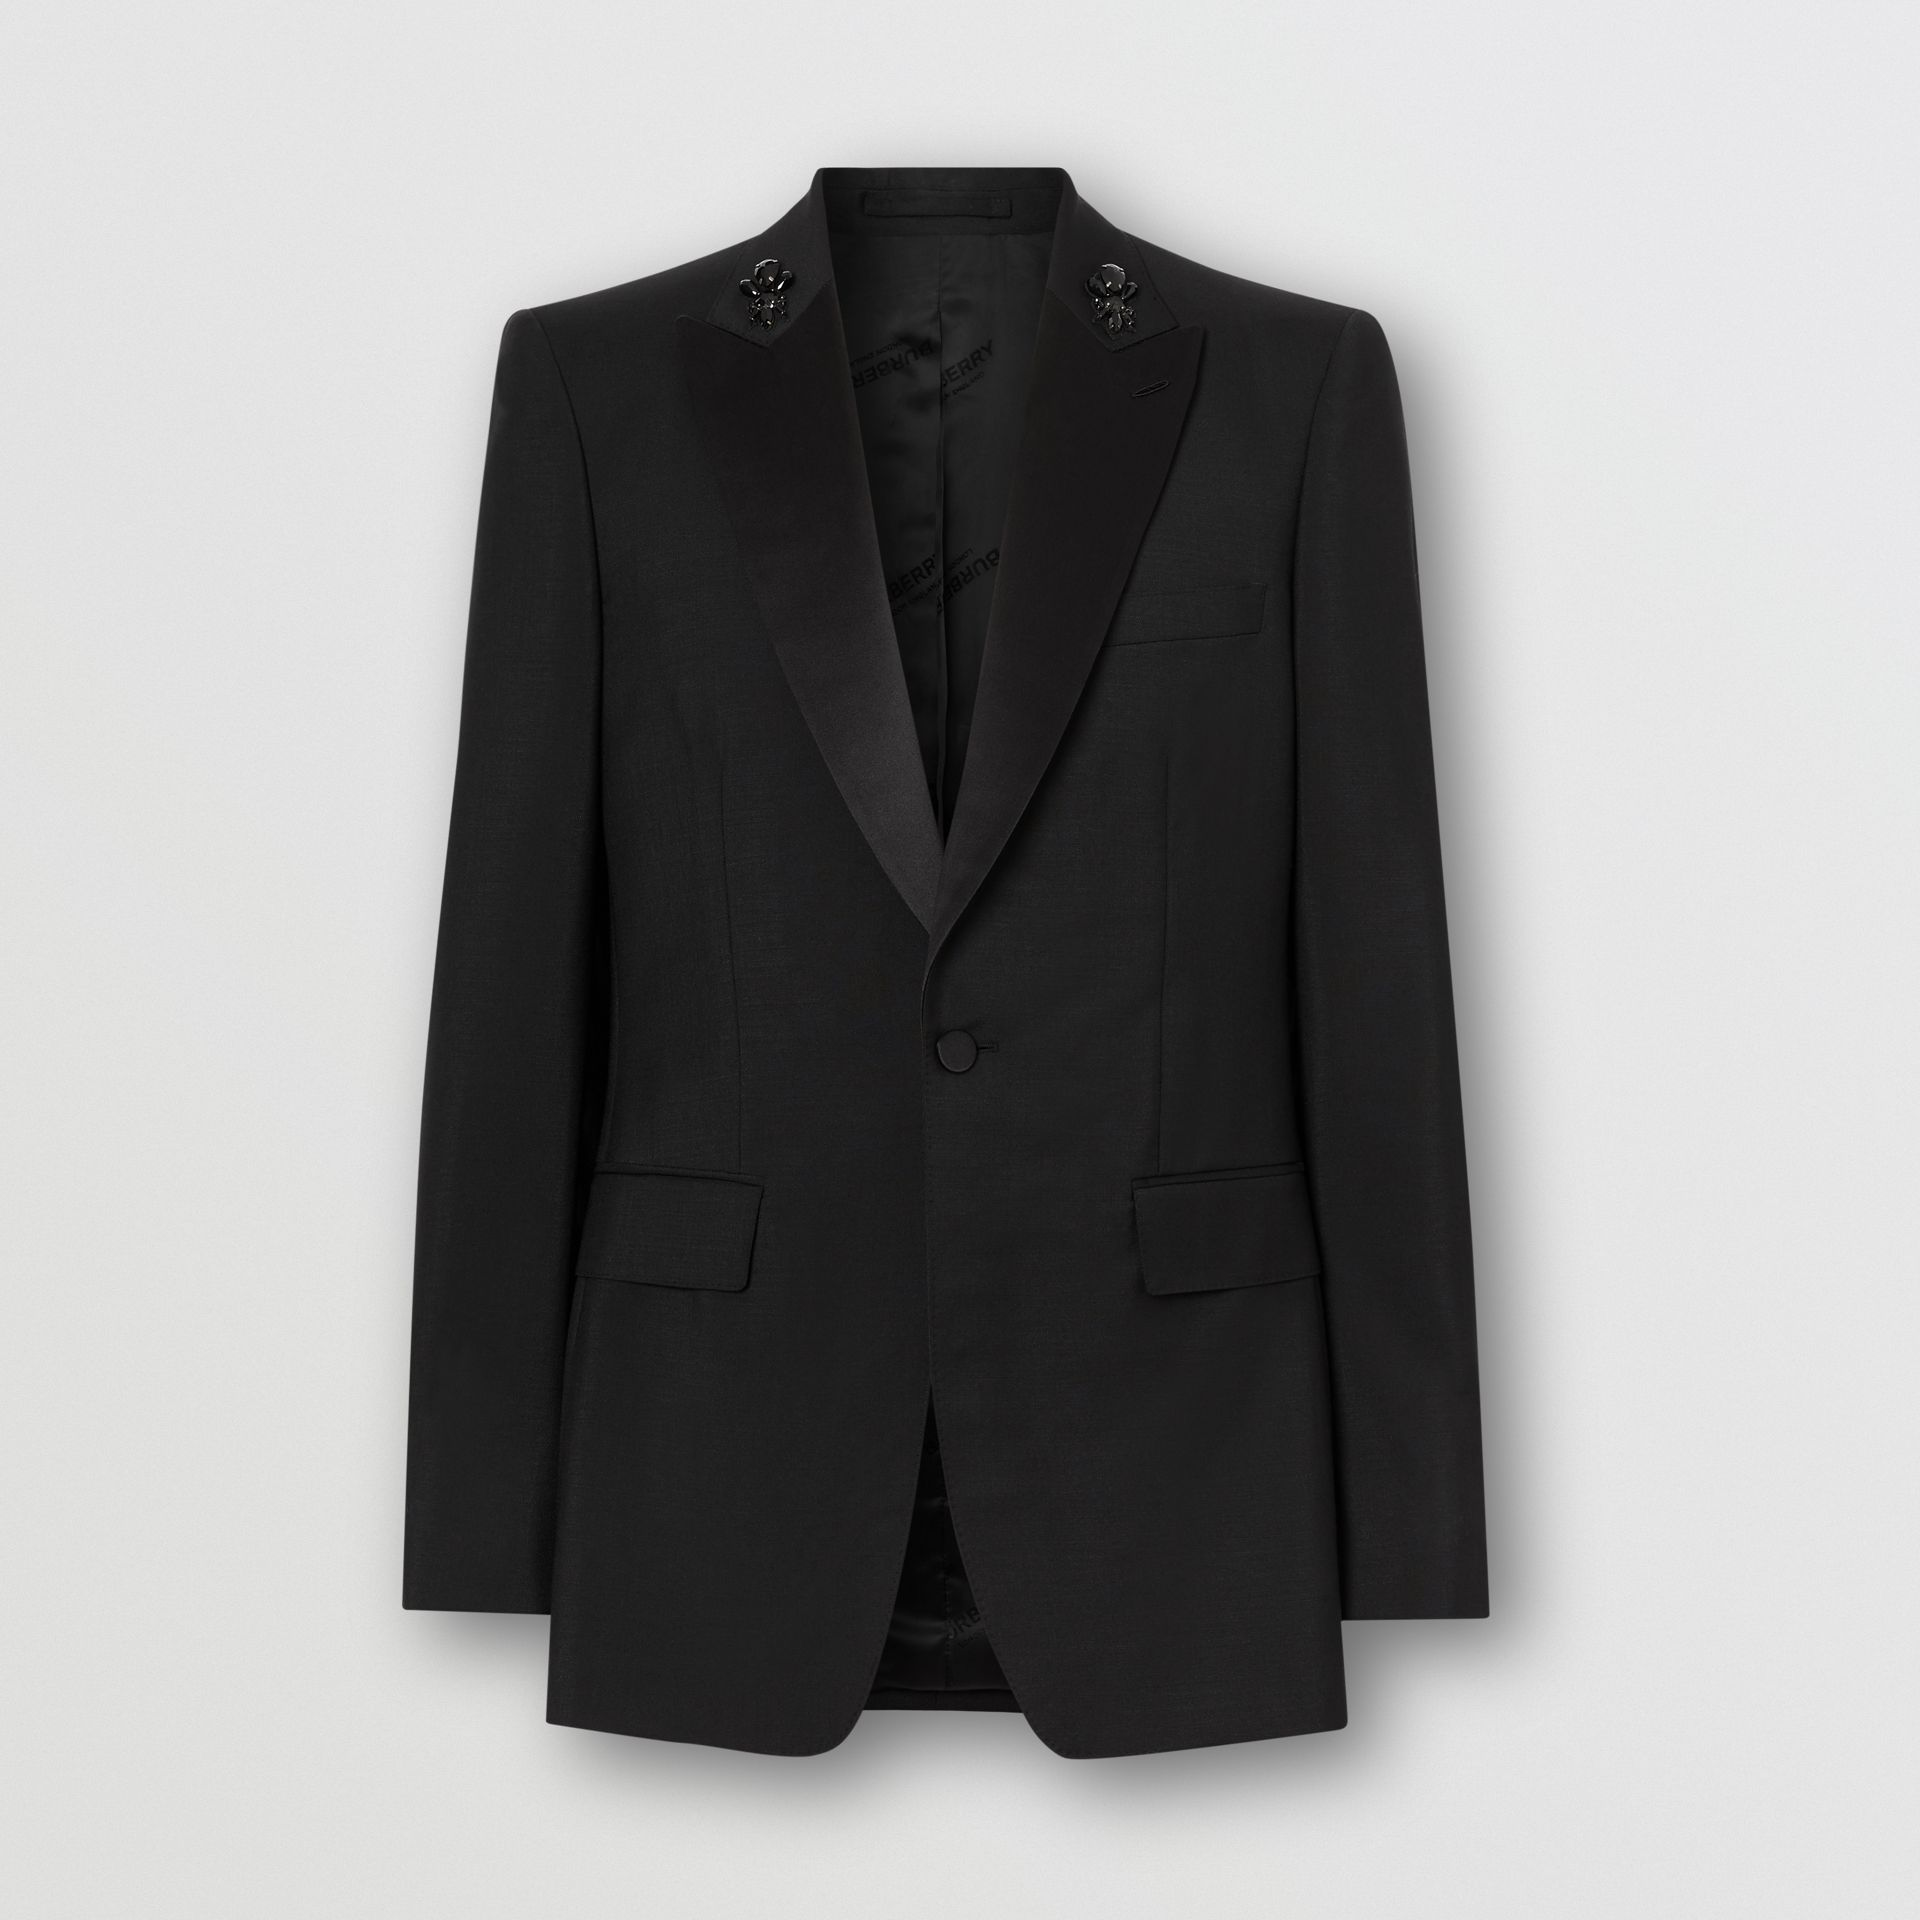 English Fit Embellished Mohair Wool Tuxedo Jacket in Black - Men | Burberry - gallery image 3